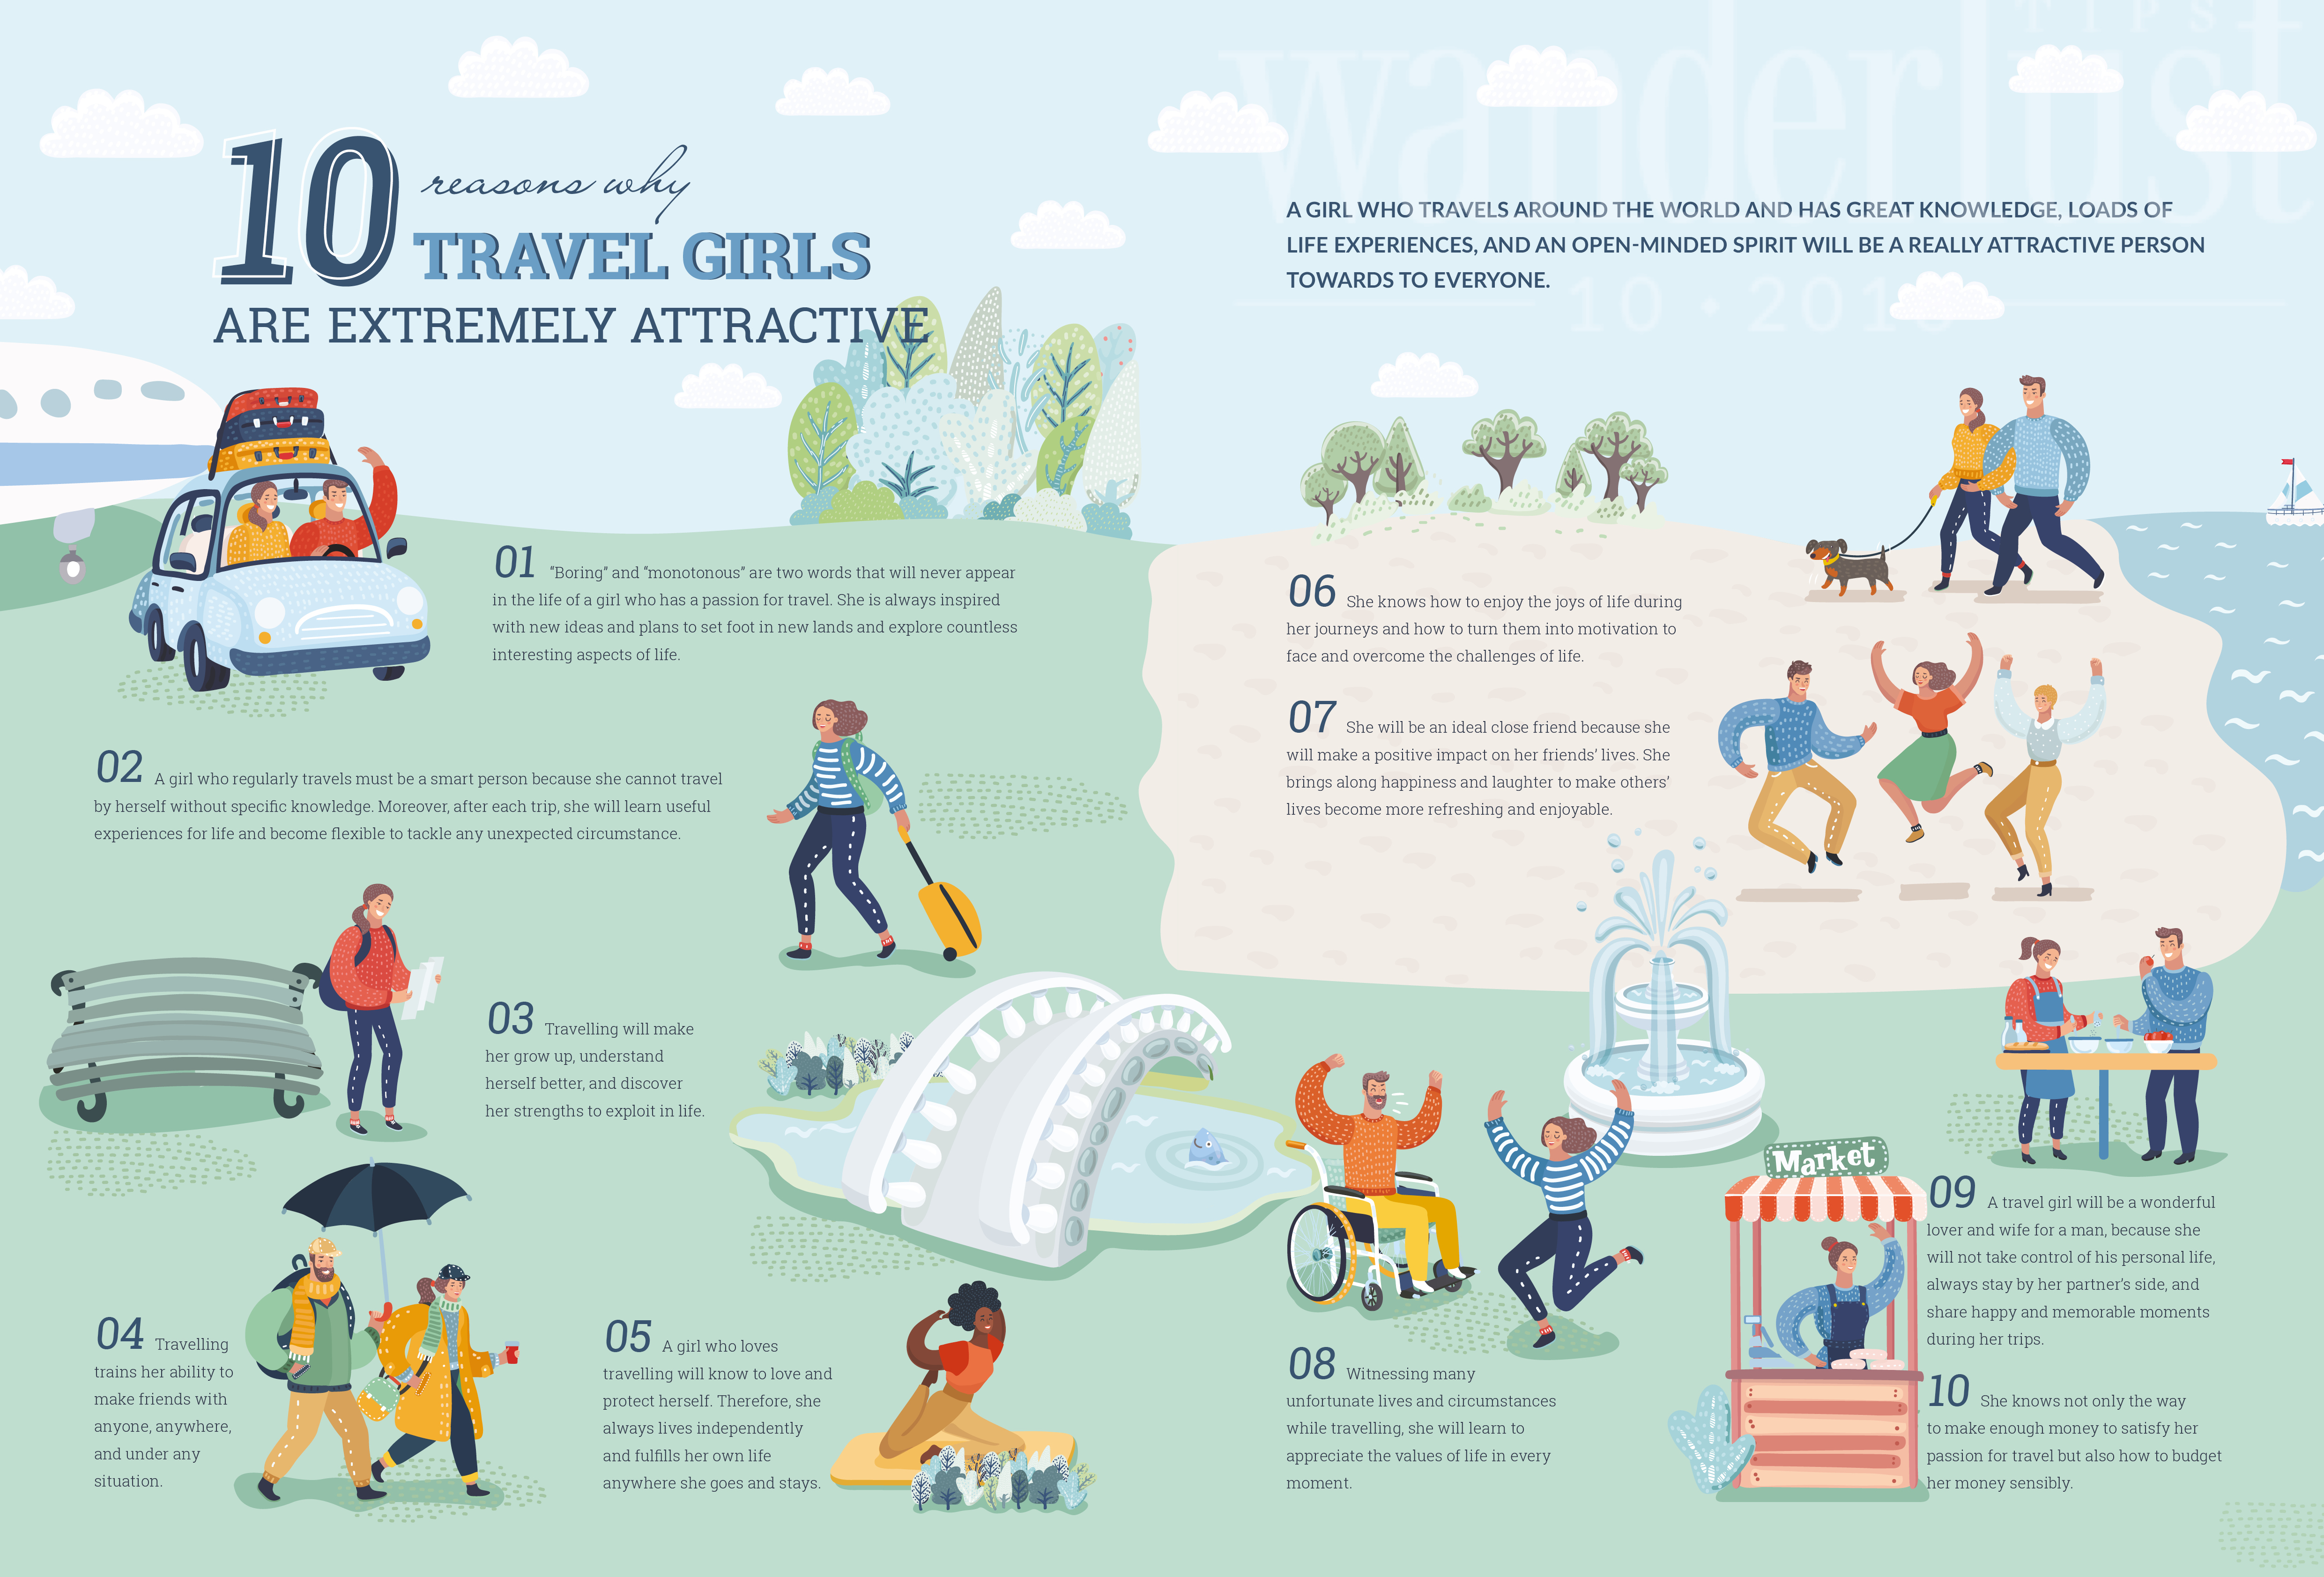 Wanderlust Tips Magazine   10 reasons why travel girls are extremely attractive